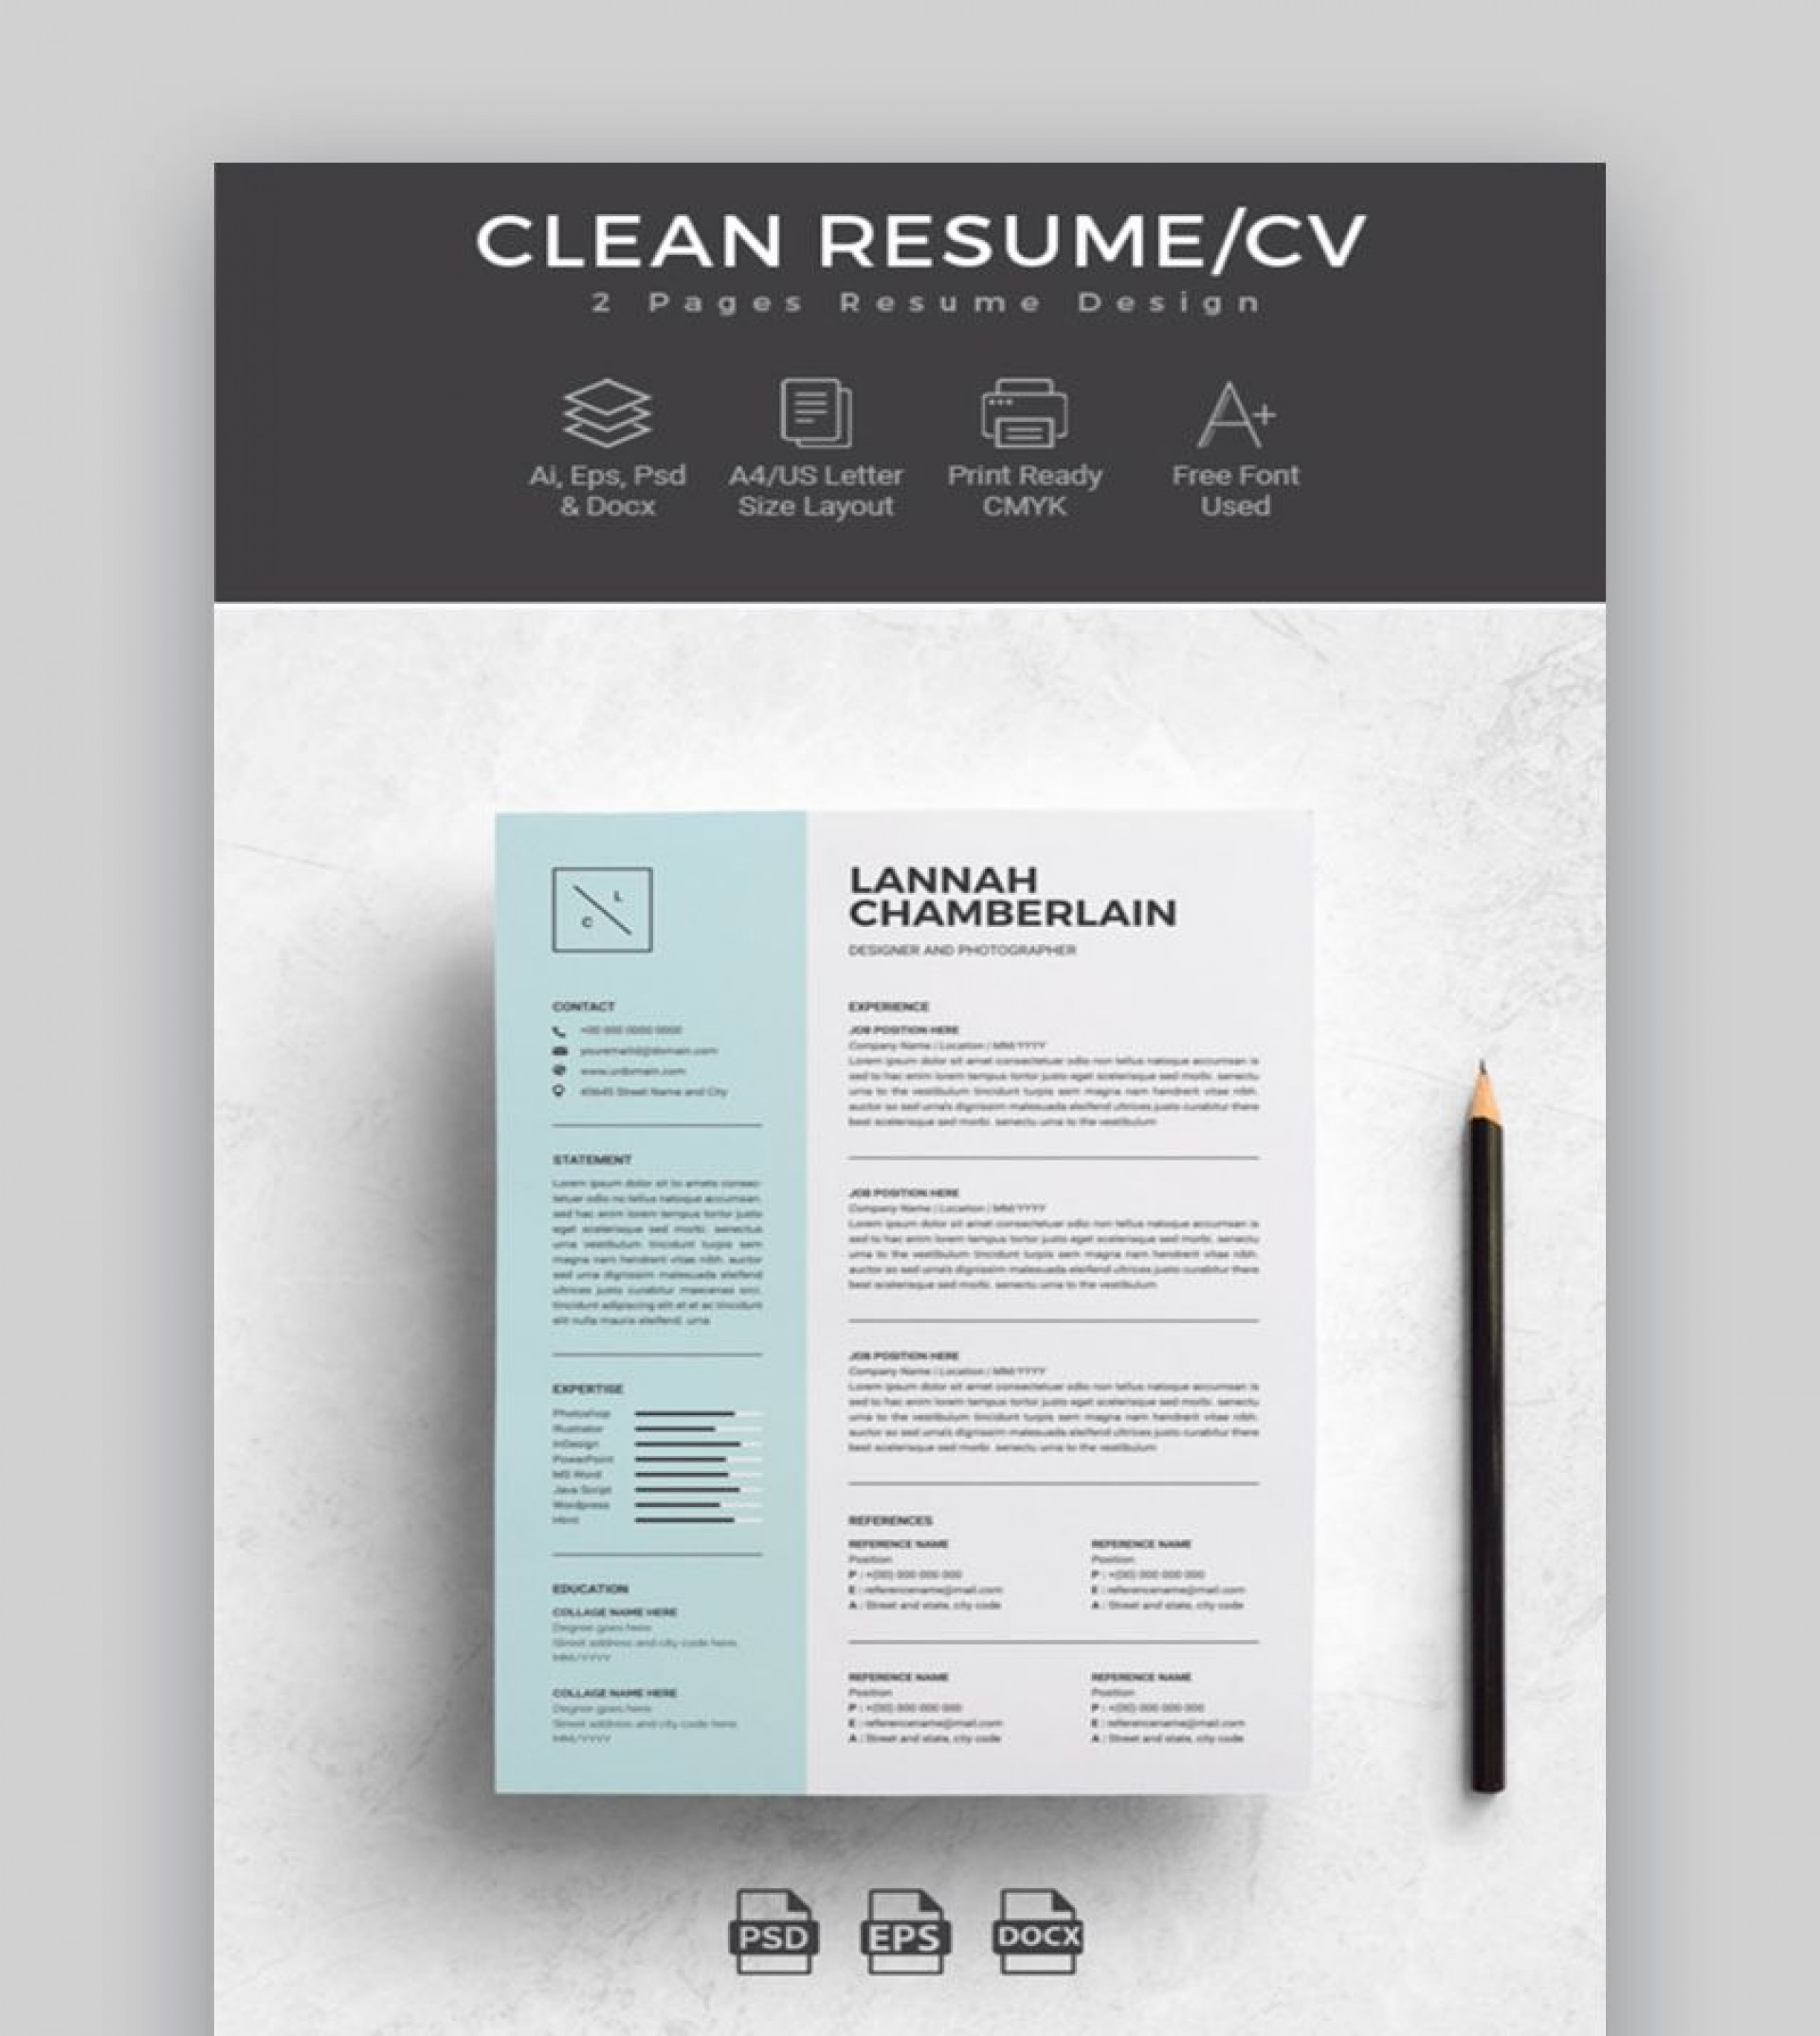 004 Outstanding Resume Template On Word Picture  2007 Download 2016 How To Get 20101920